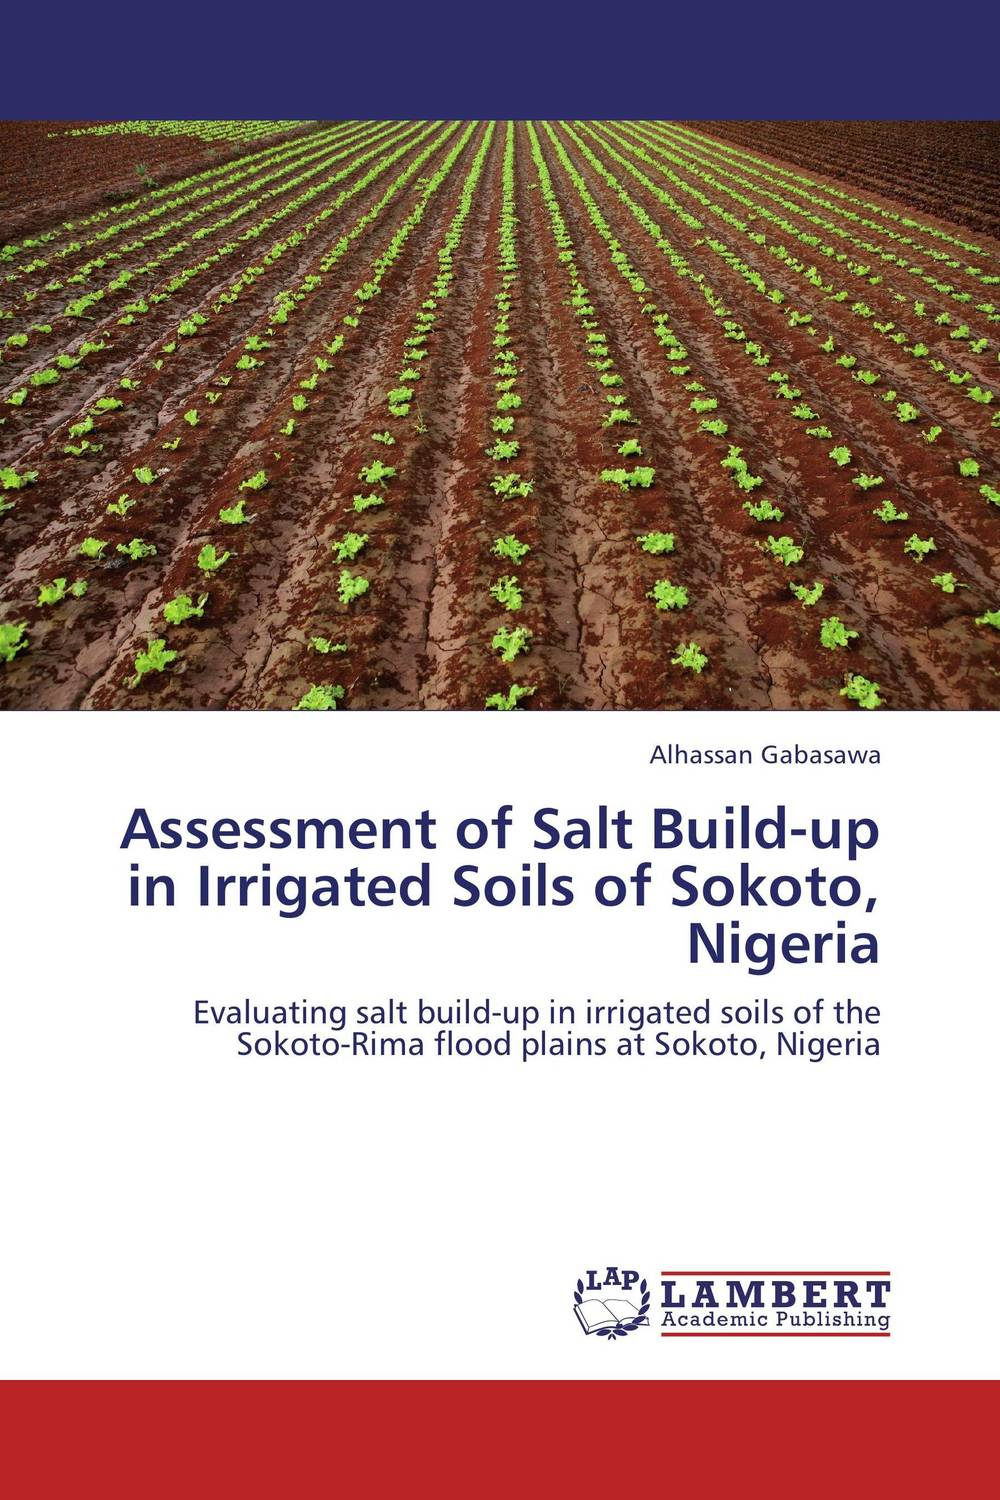 Assessment of Salt Build-up in Irrigated Soils of Sokoto, Nigeria status of soils and water reservoirs near industrial areas of baroda